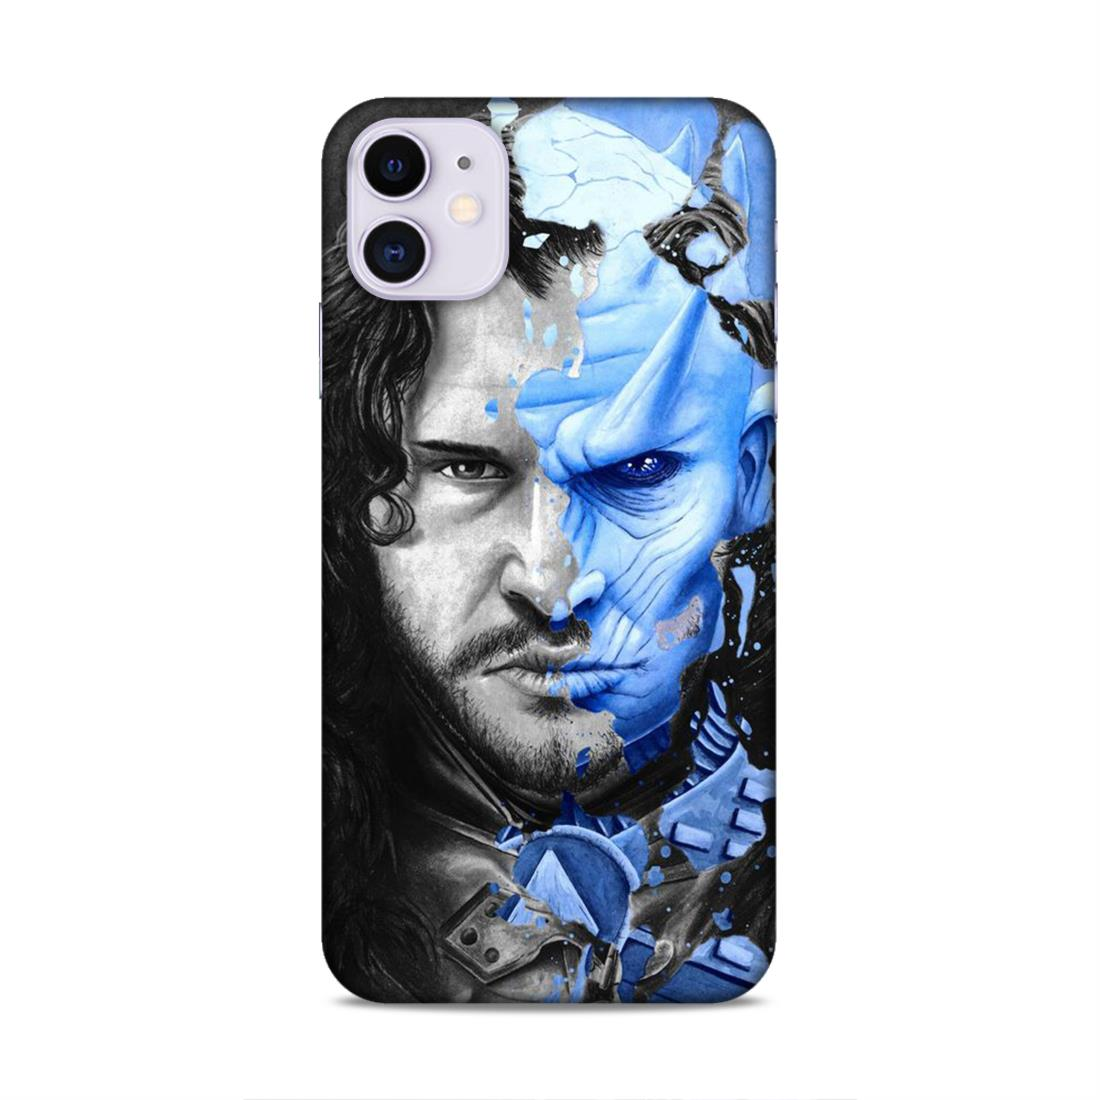 Phone Cases,Apple Phone Cases,iPhone 11,Game Of Thrones